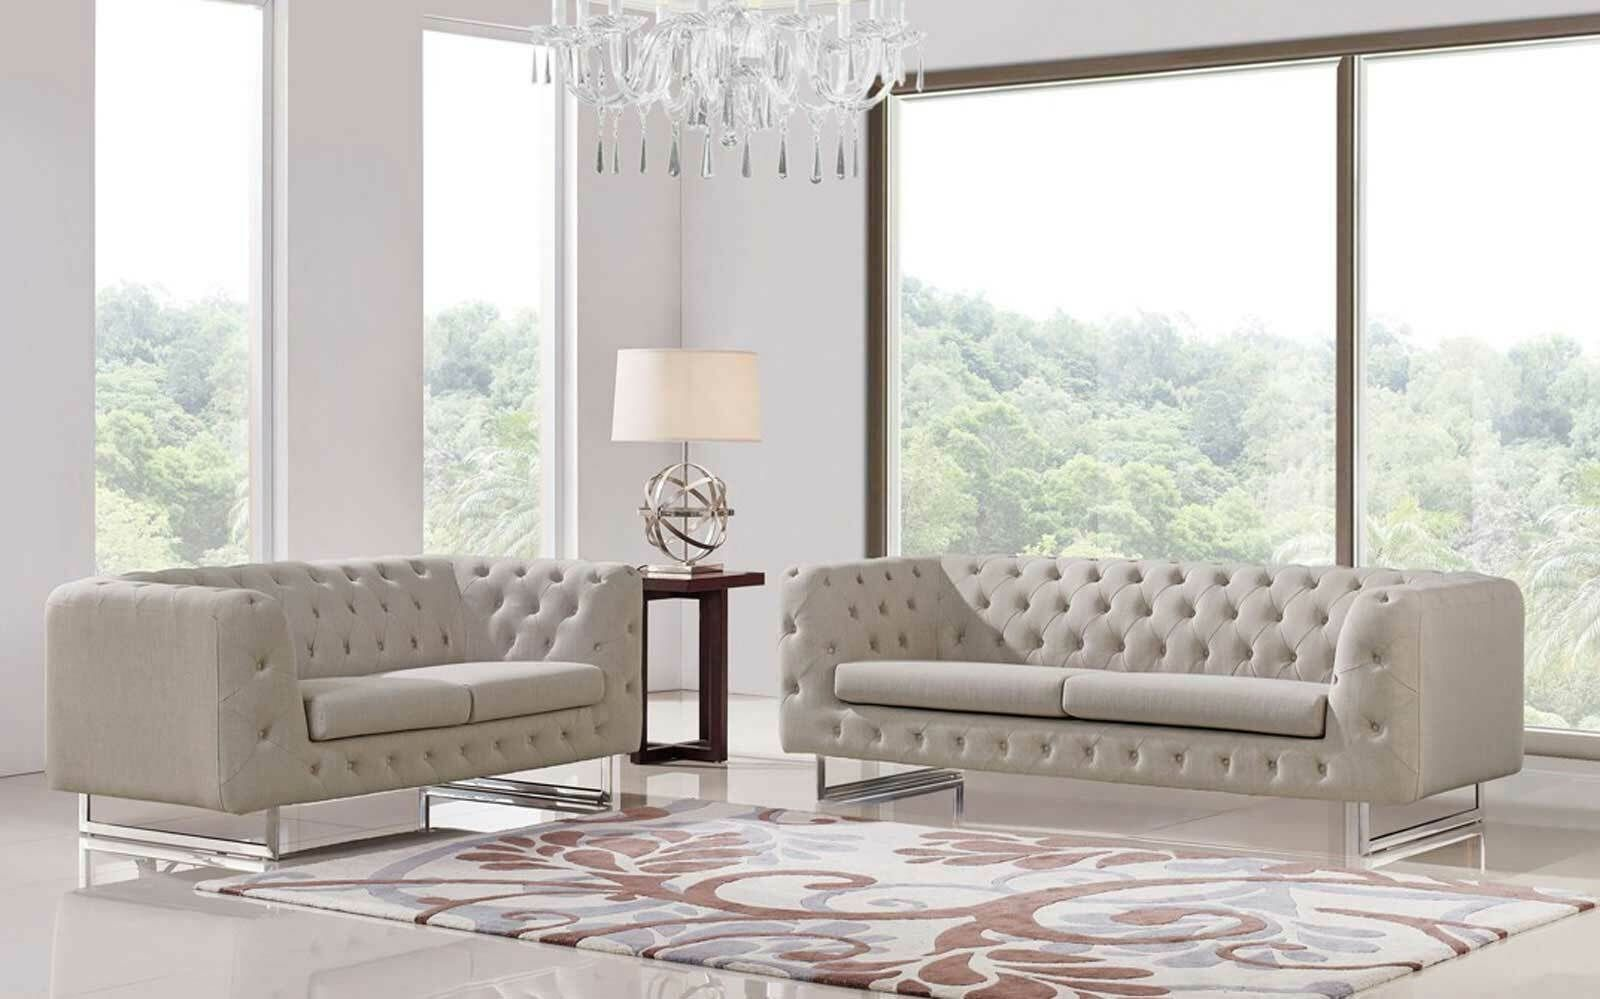 Modern Design Living Room Beige Tufted Fabric Sofa Couch Loveseat Chair Set Irvn Sofa Set Ideas Of Sofa Living Room Sofa Chaise Lounge Living Room Sofa Set